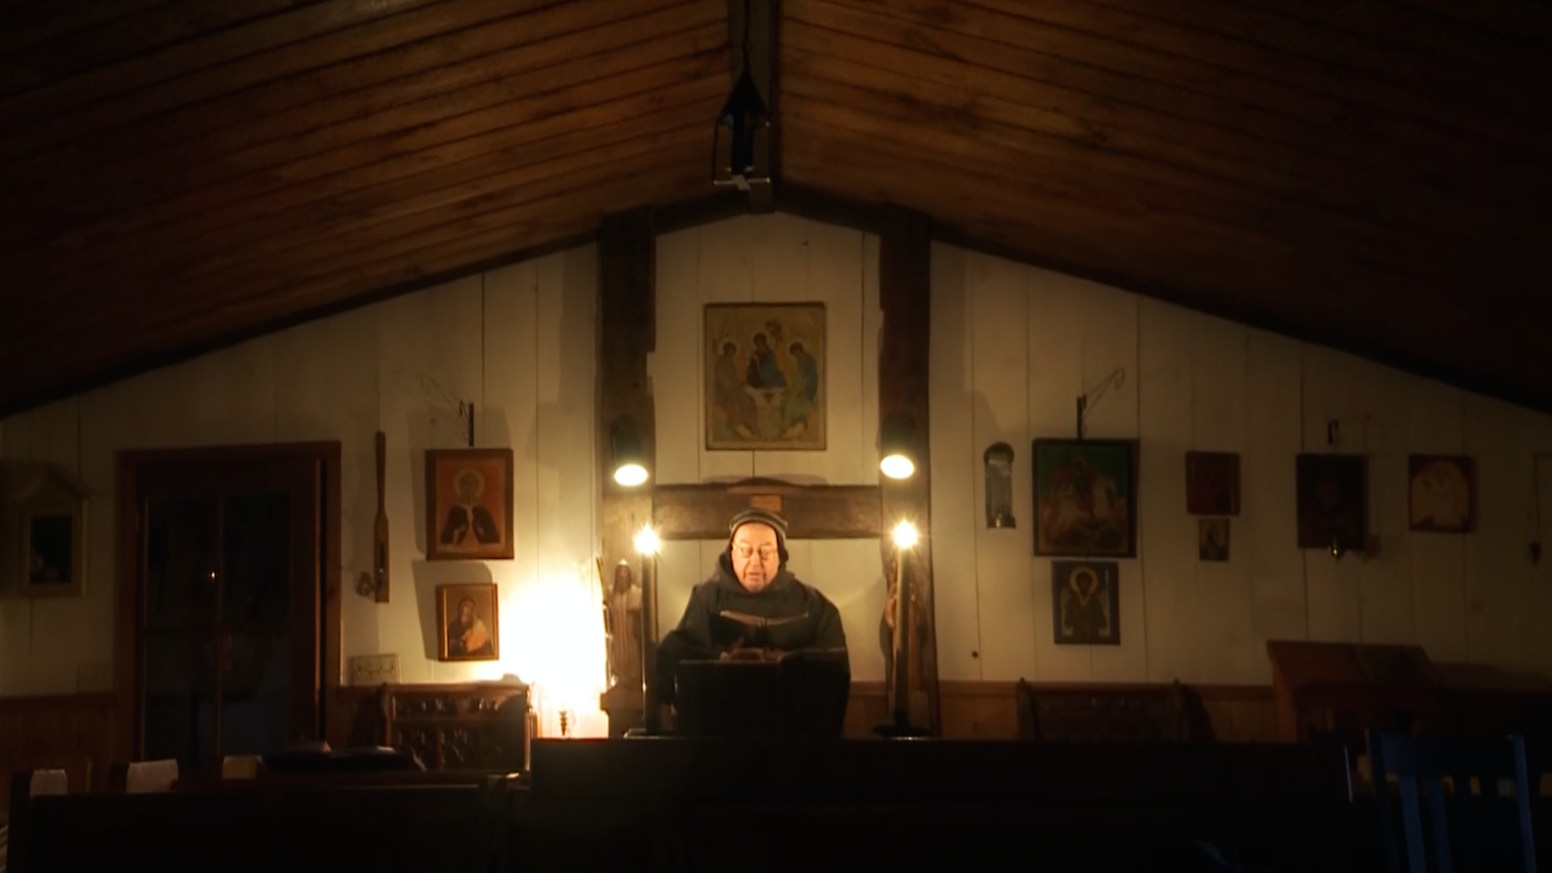 A cinematic journey into the daily life of a well-known Benedictine Monk.